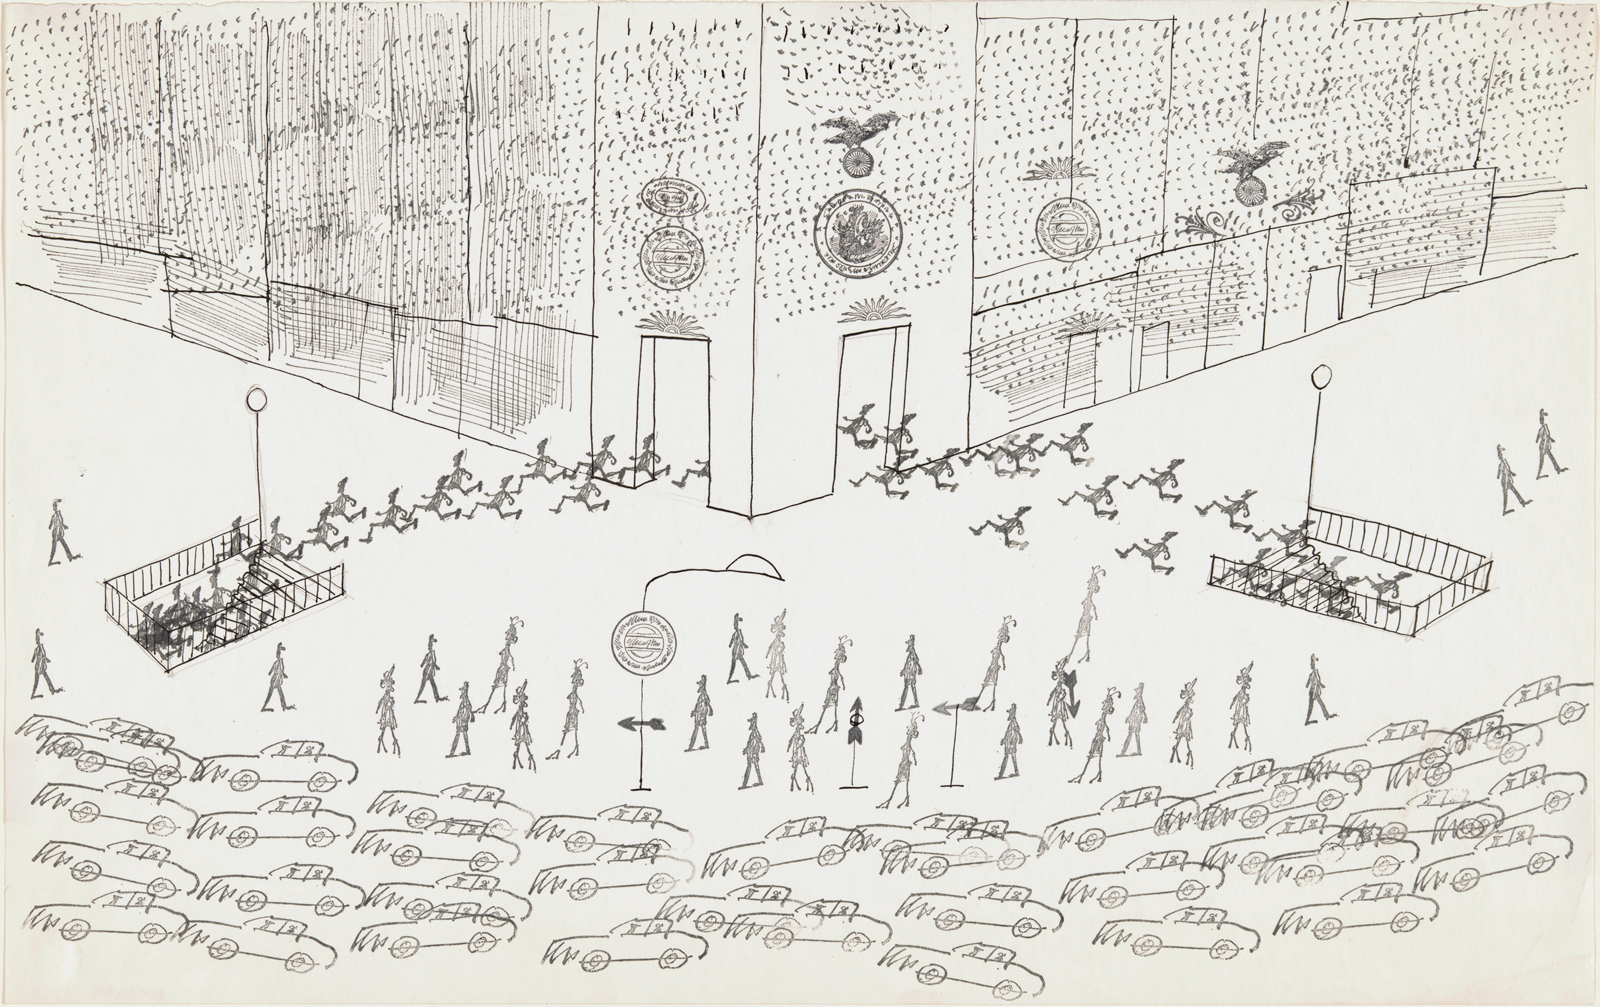 Saul Steinbergs View Of The World By Chris Ware NYR